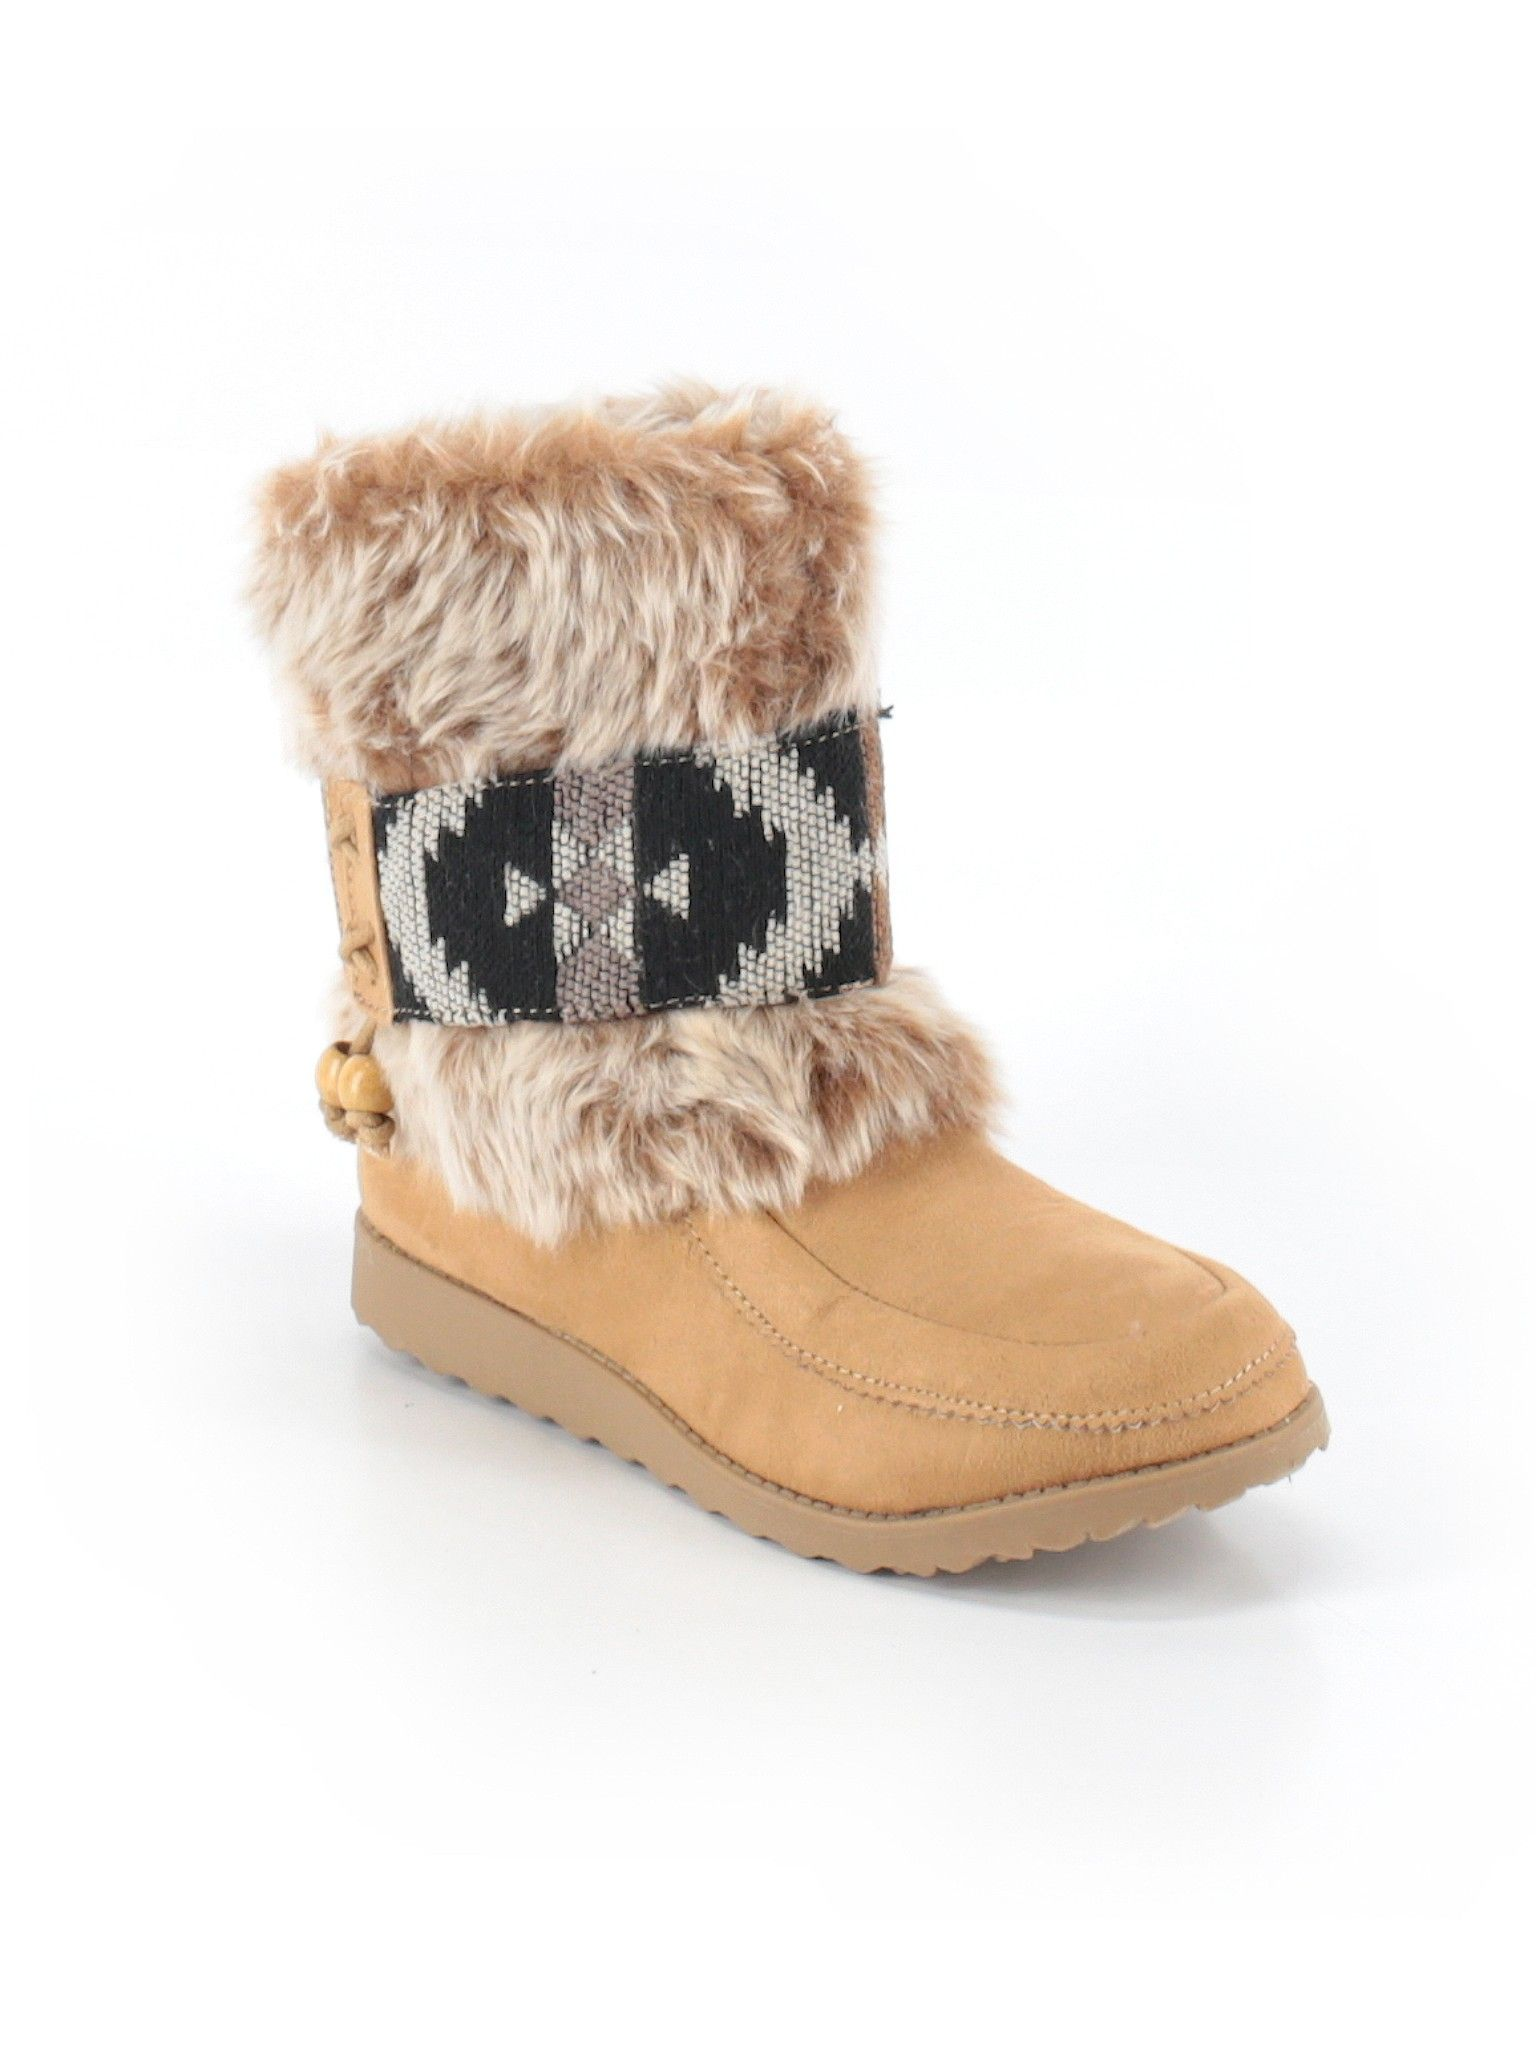 414fb7febf3 Boots | Products | Boots, Tan boots, Ugg boots